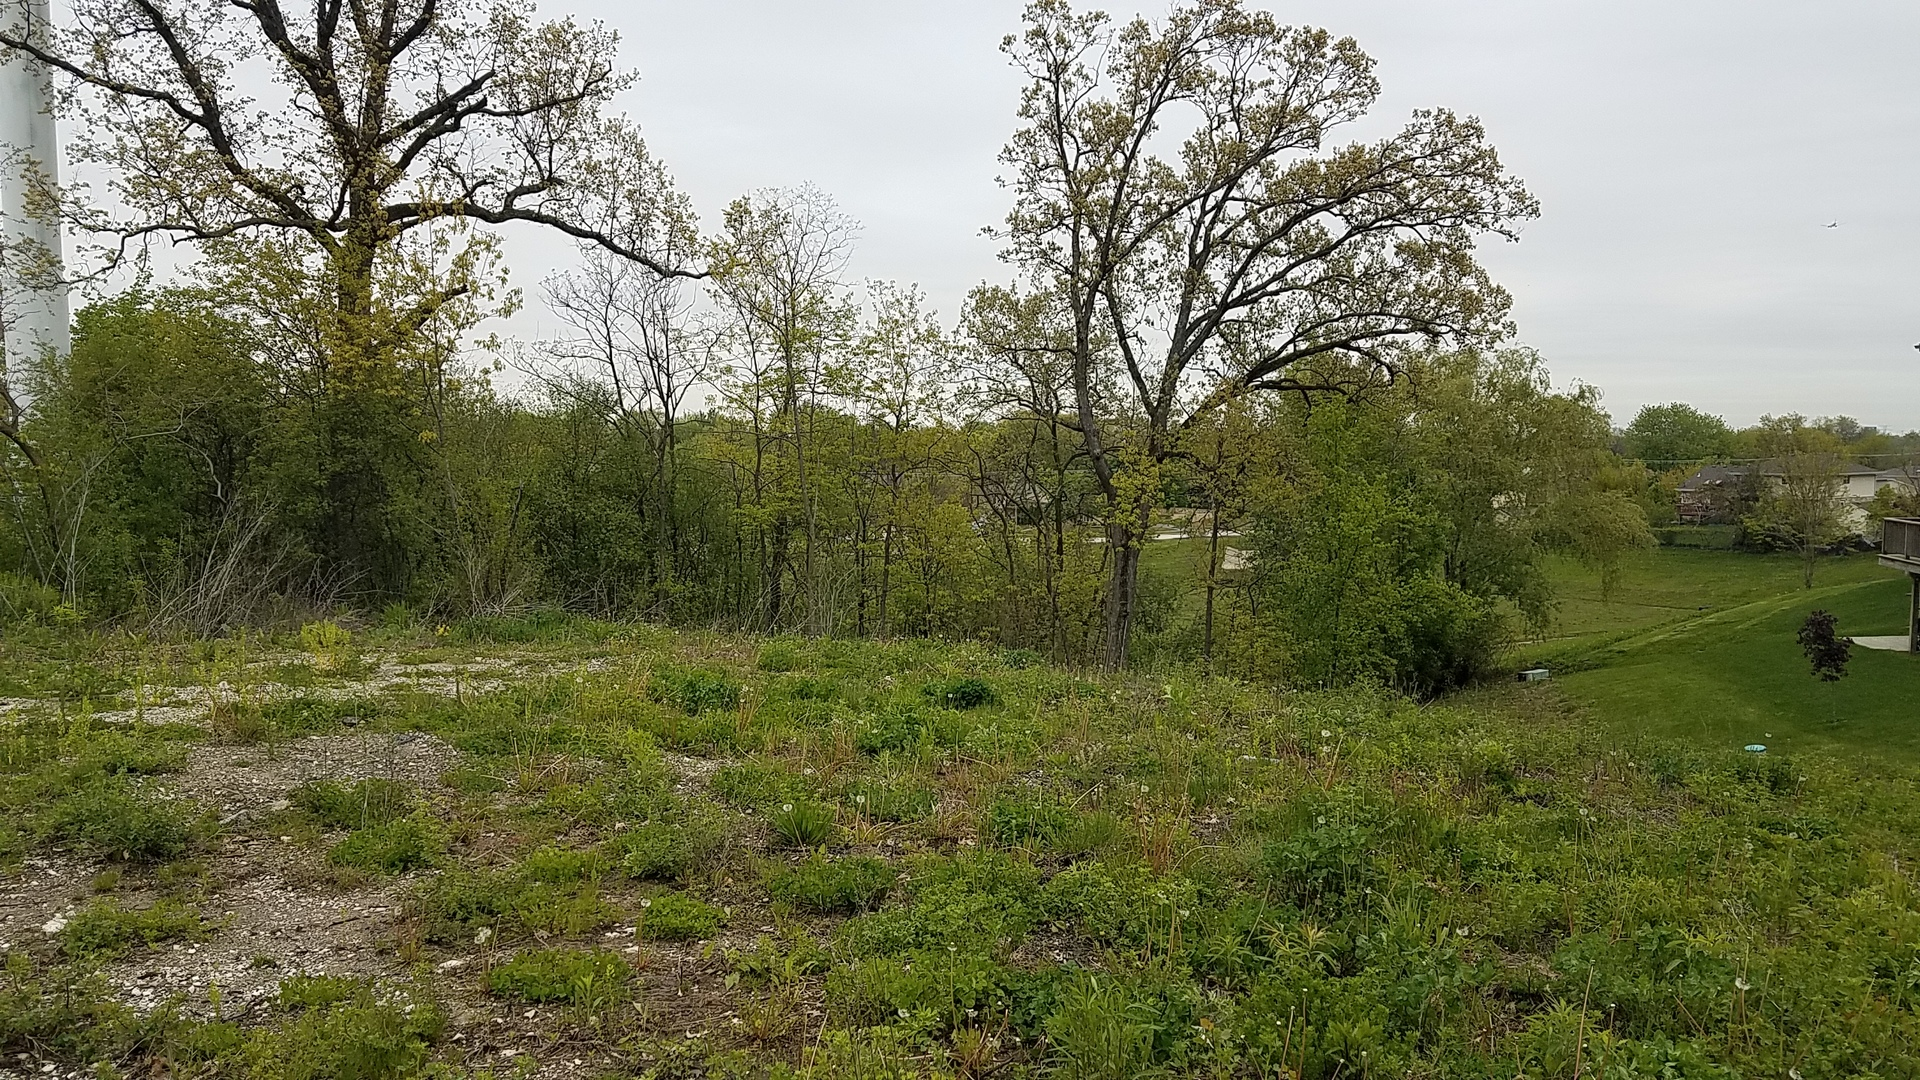 Great opportunity to own this large 68X100 home site in beautiful Hickory Hills. Build your custom dream home in the exclusive Park Hill Estates. Close to schools, parks, and shopping. Easy access to I-294 expressway and I-55, only 20 miles from Chicago. All utilities are available to site on this walk-out basement home site.